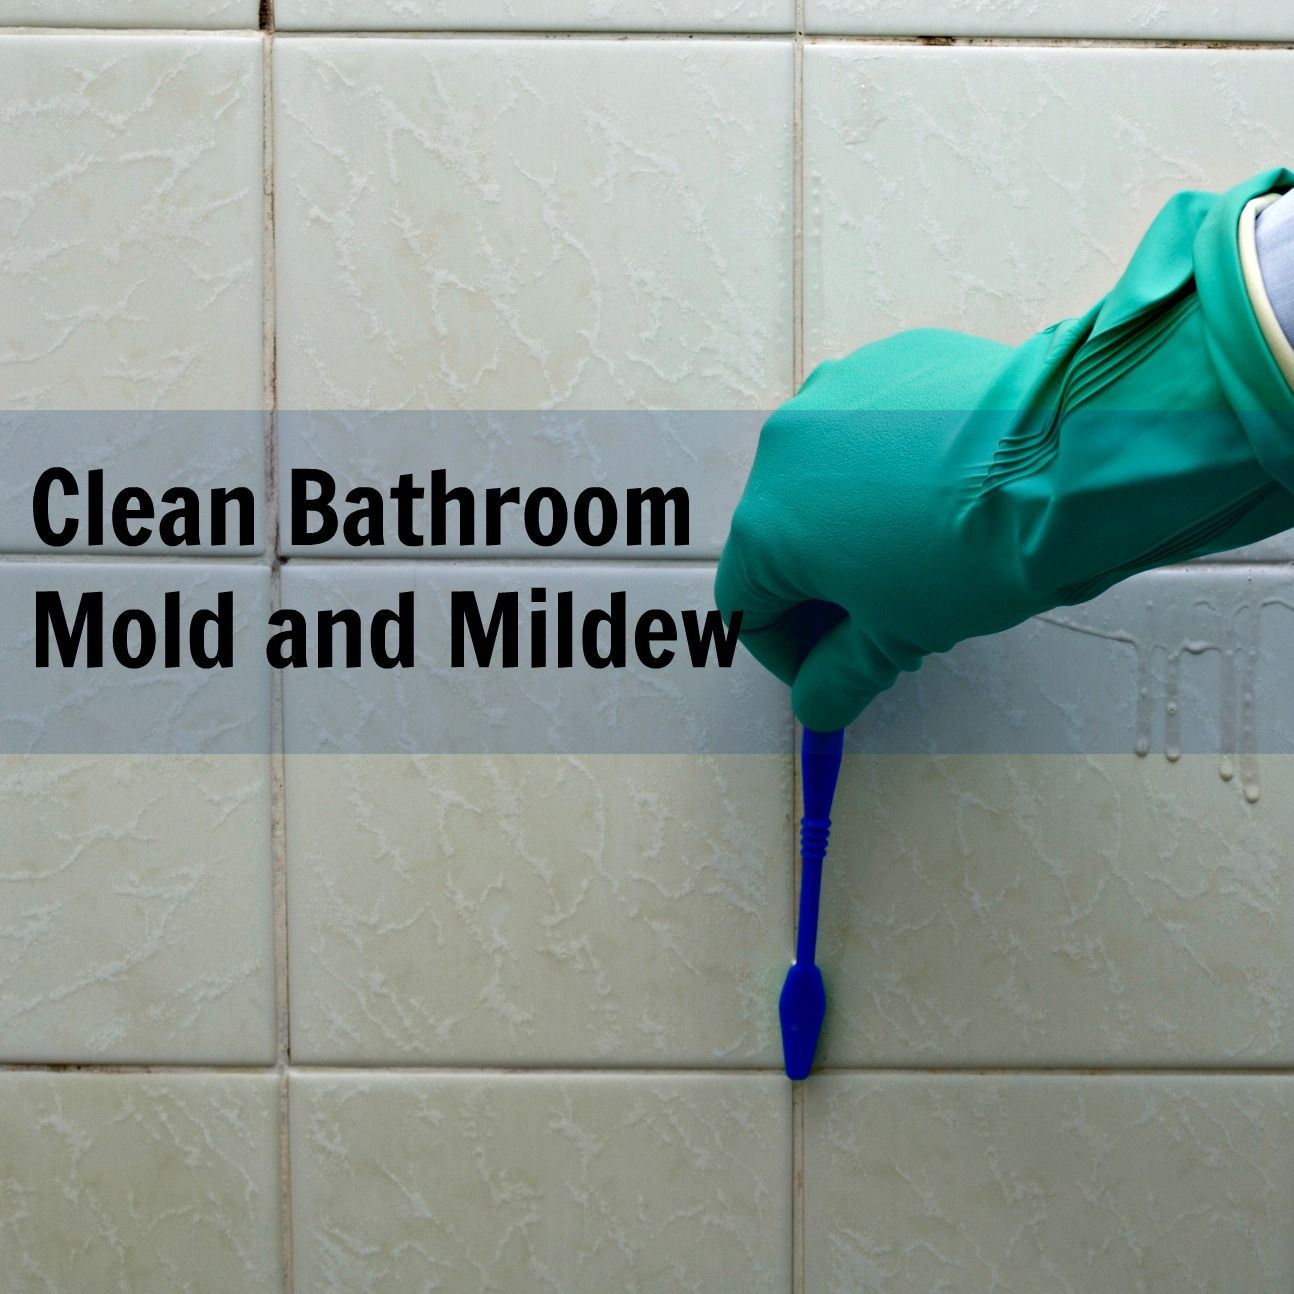 Bathroom Mold And Mildew Solutions Ideas Pinterest Remove Mold - Removing mold from bathroom walls and ceiling